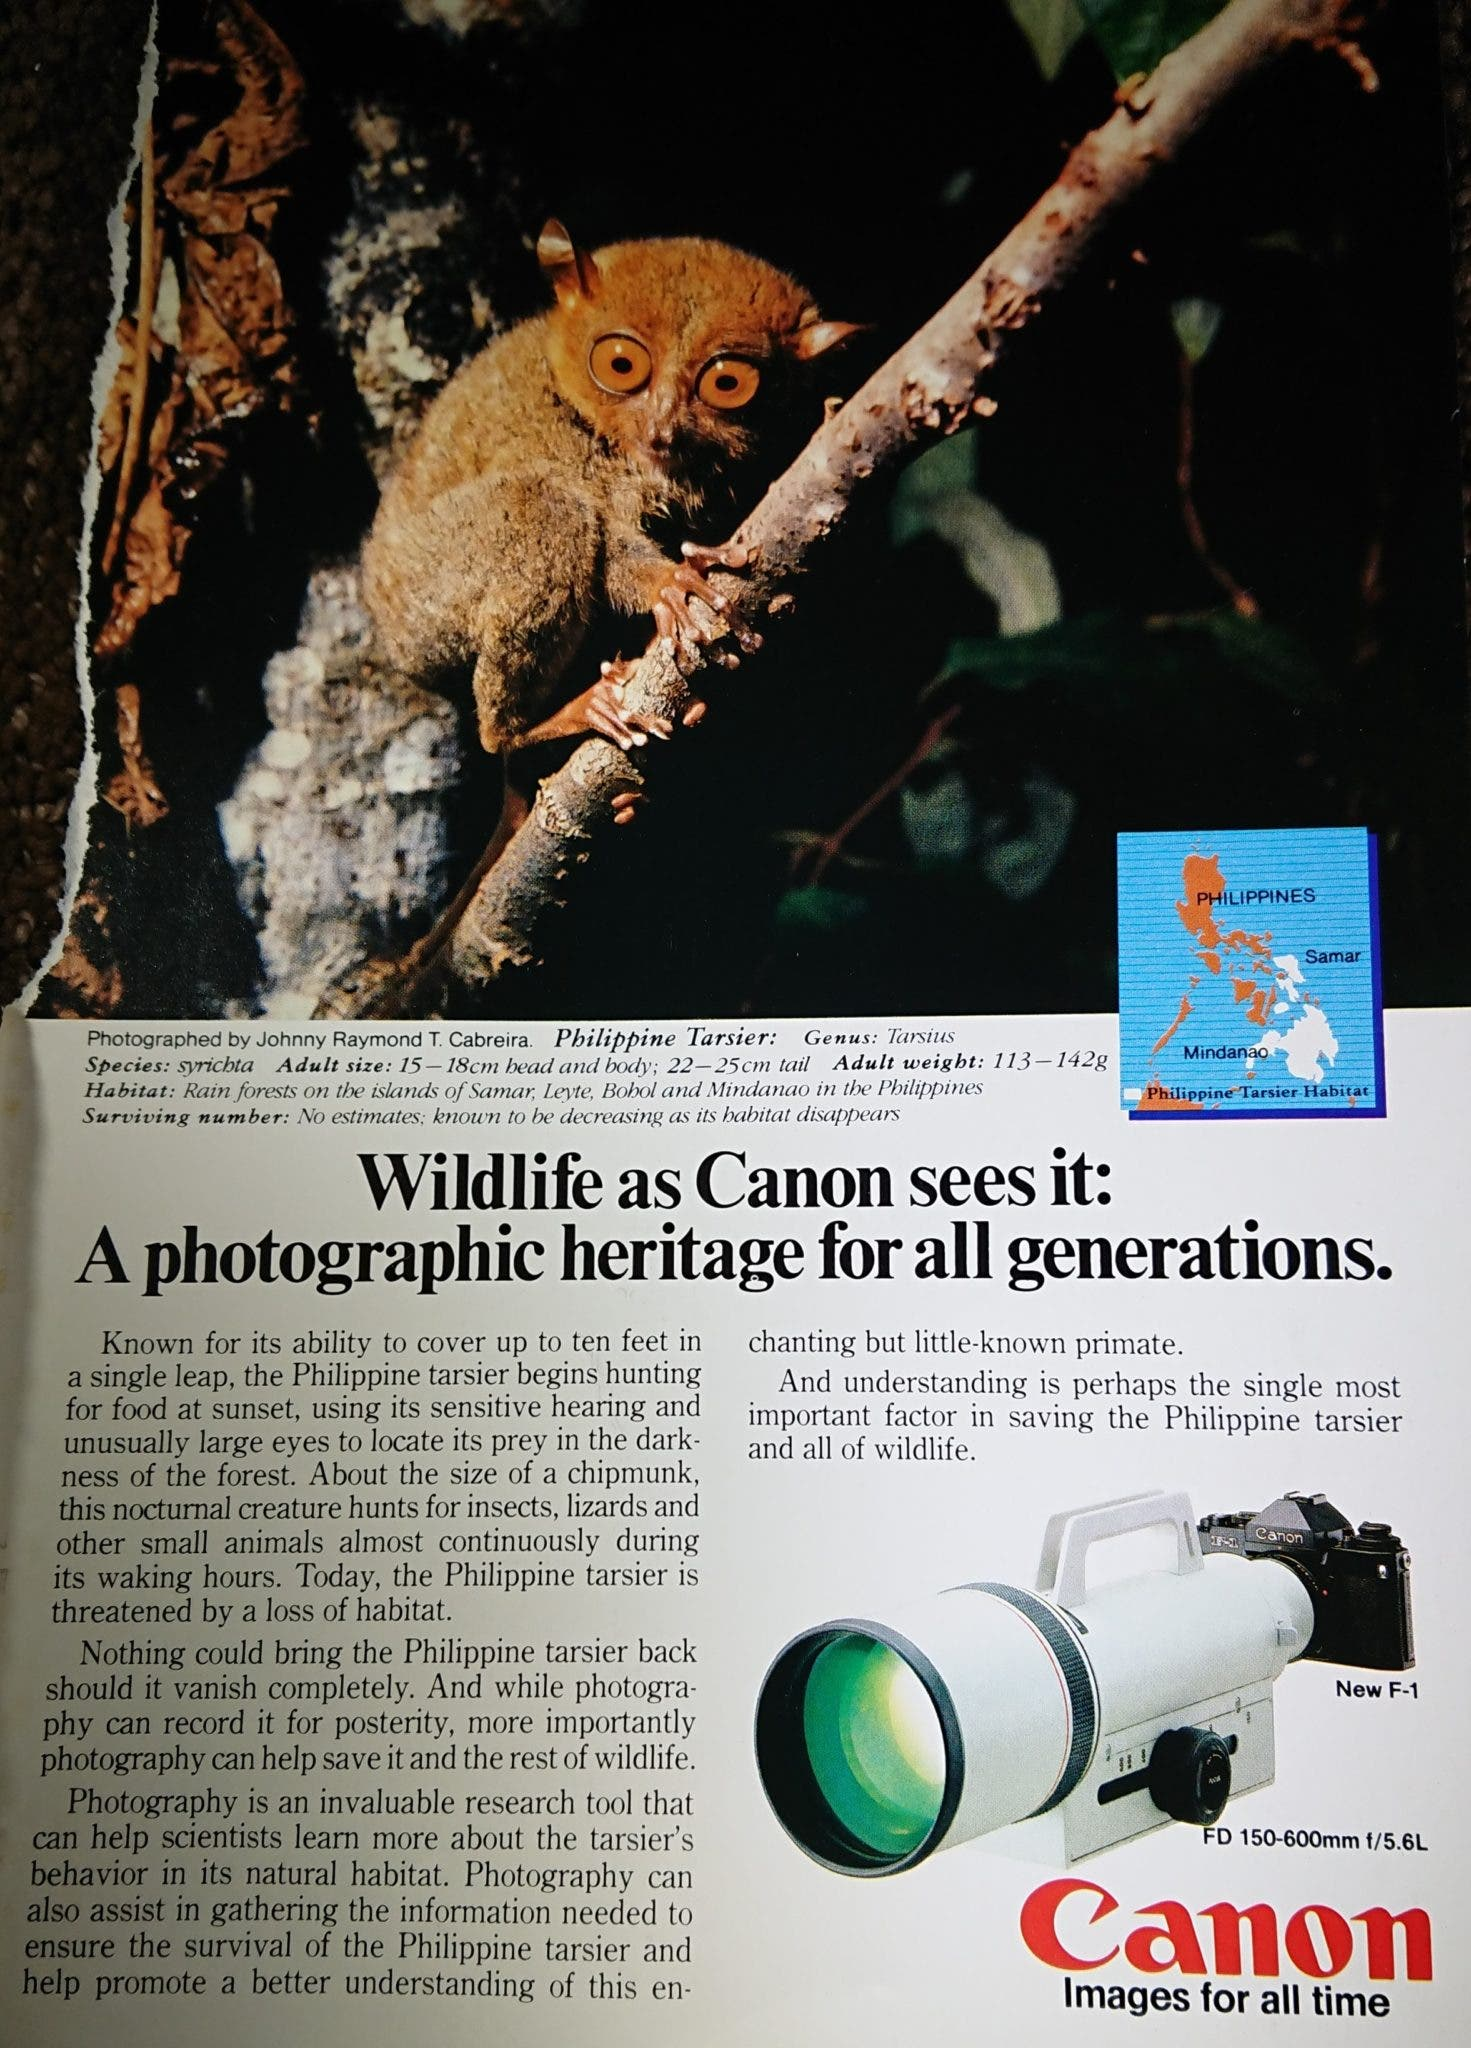 80's Canon Ad Emphasizes Photography's Role in Wildlife Conservation